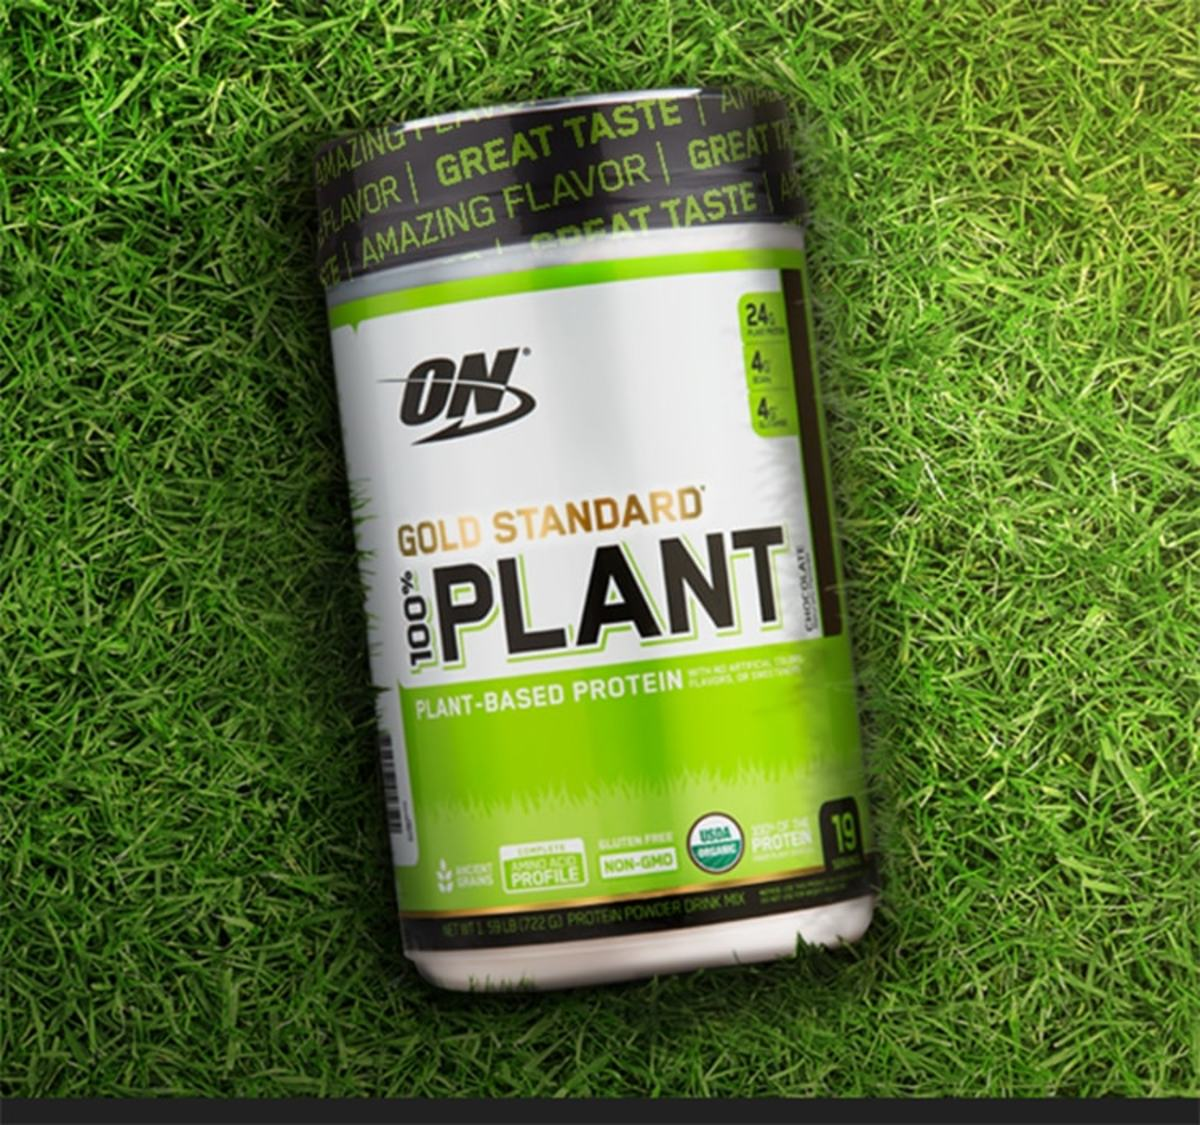 Optimum Nutrition S Plant Based Protein Powder Is Making Waves Fitedm